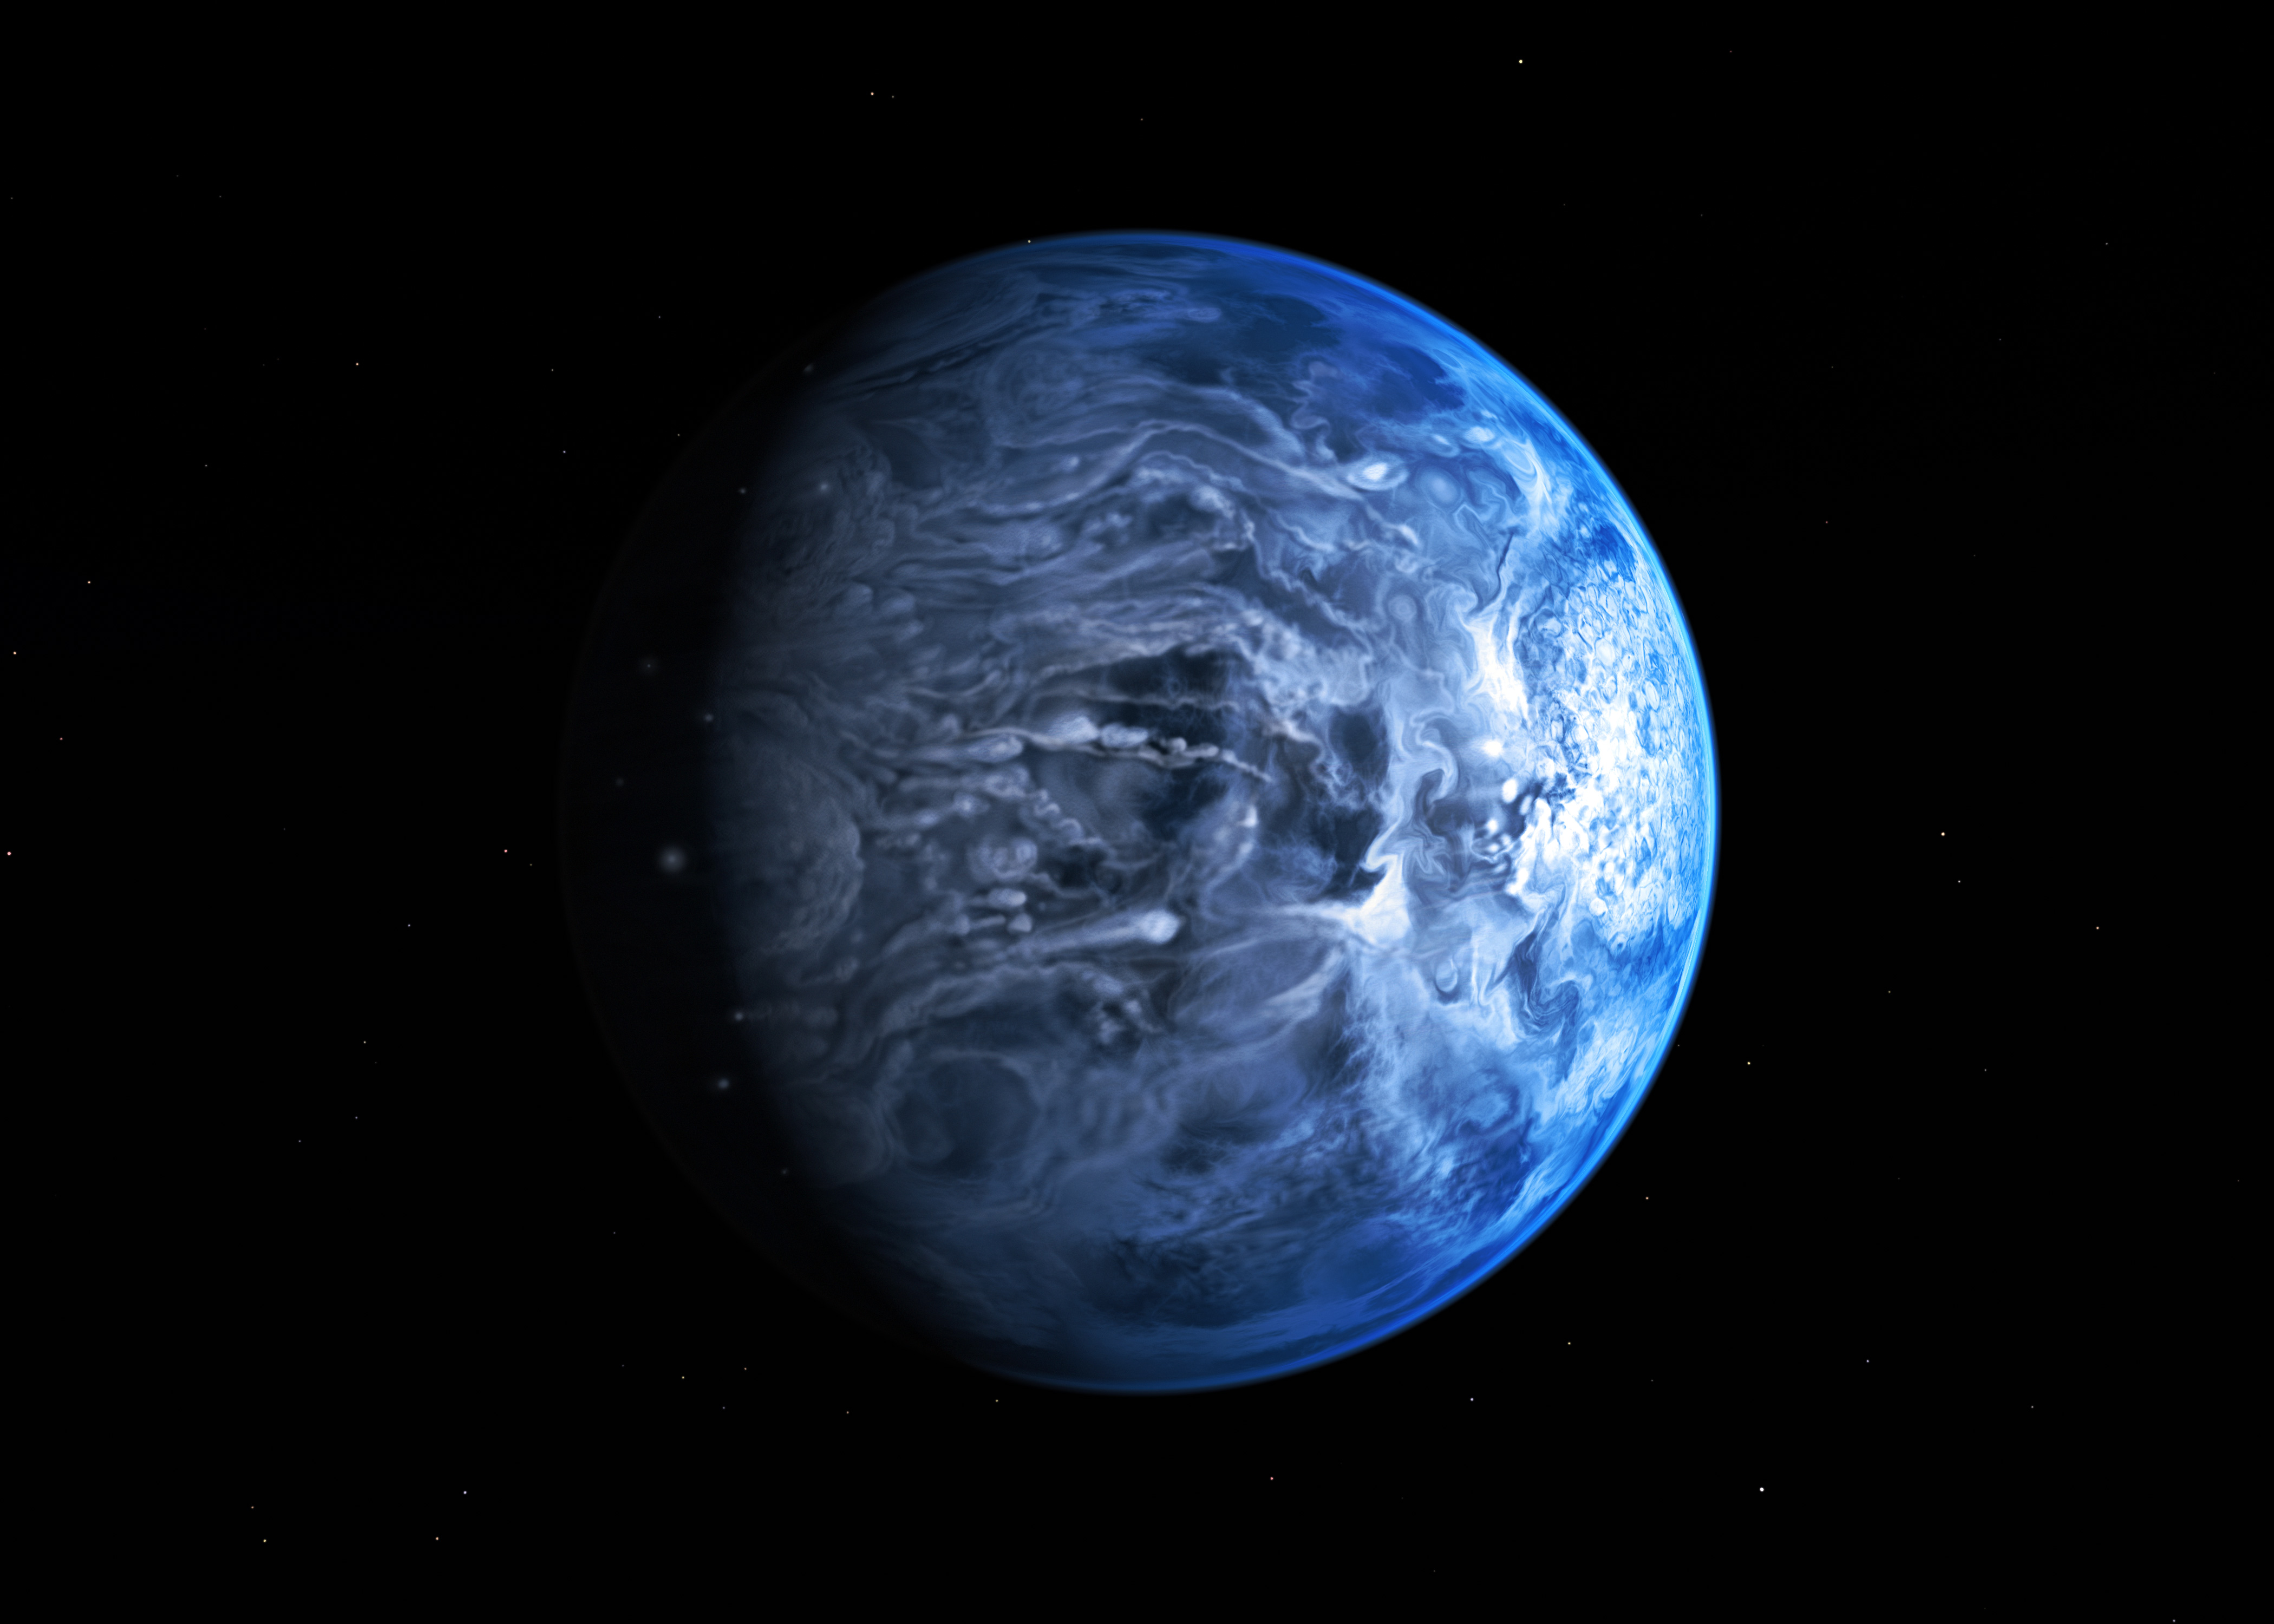 Blue and bizarre - Exoplanet Exploration: Planets Beyond our Solar System